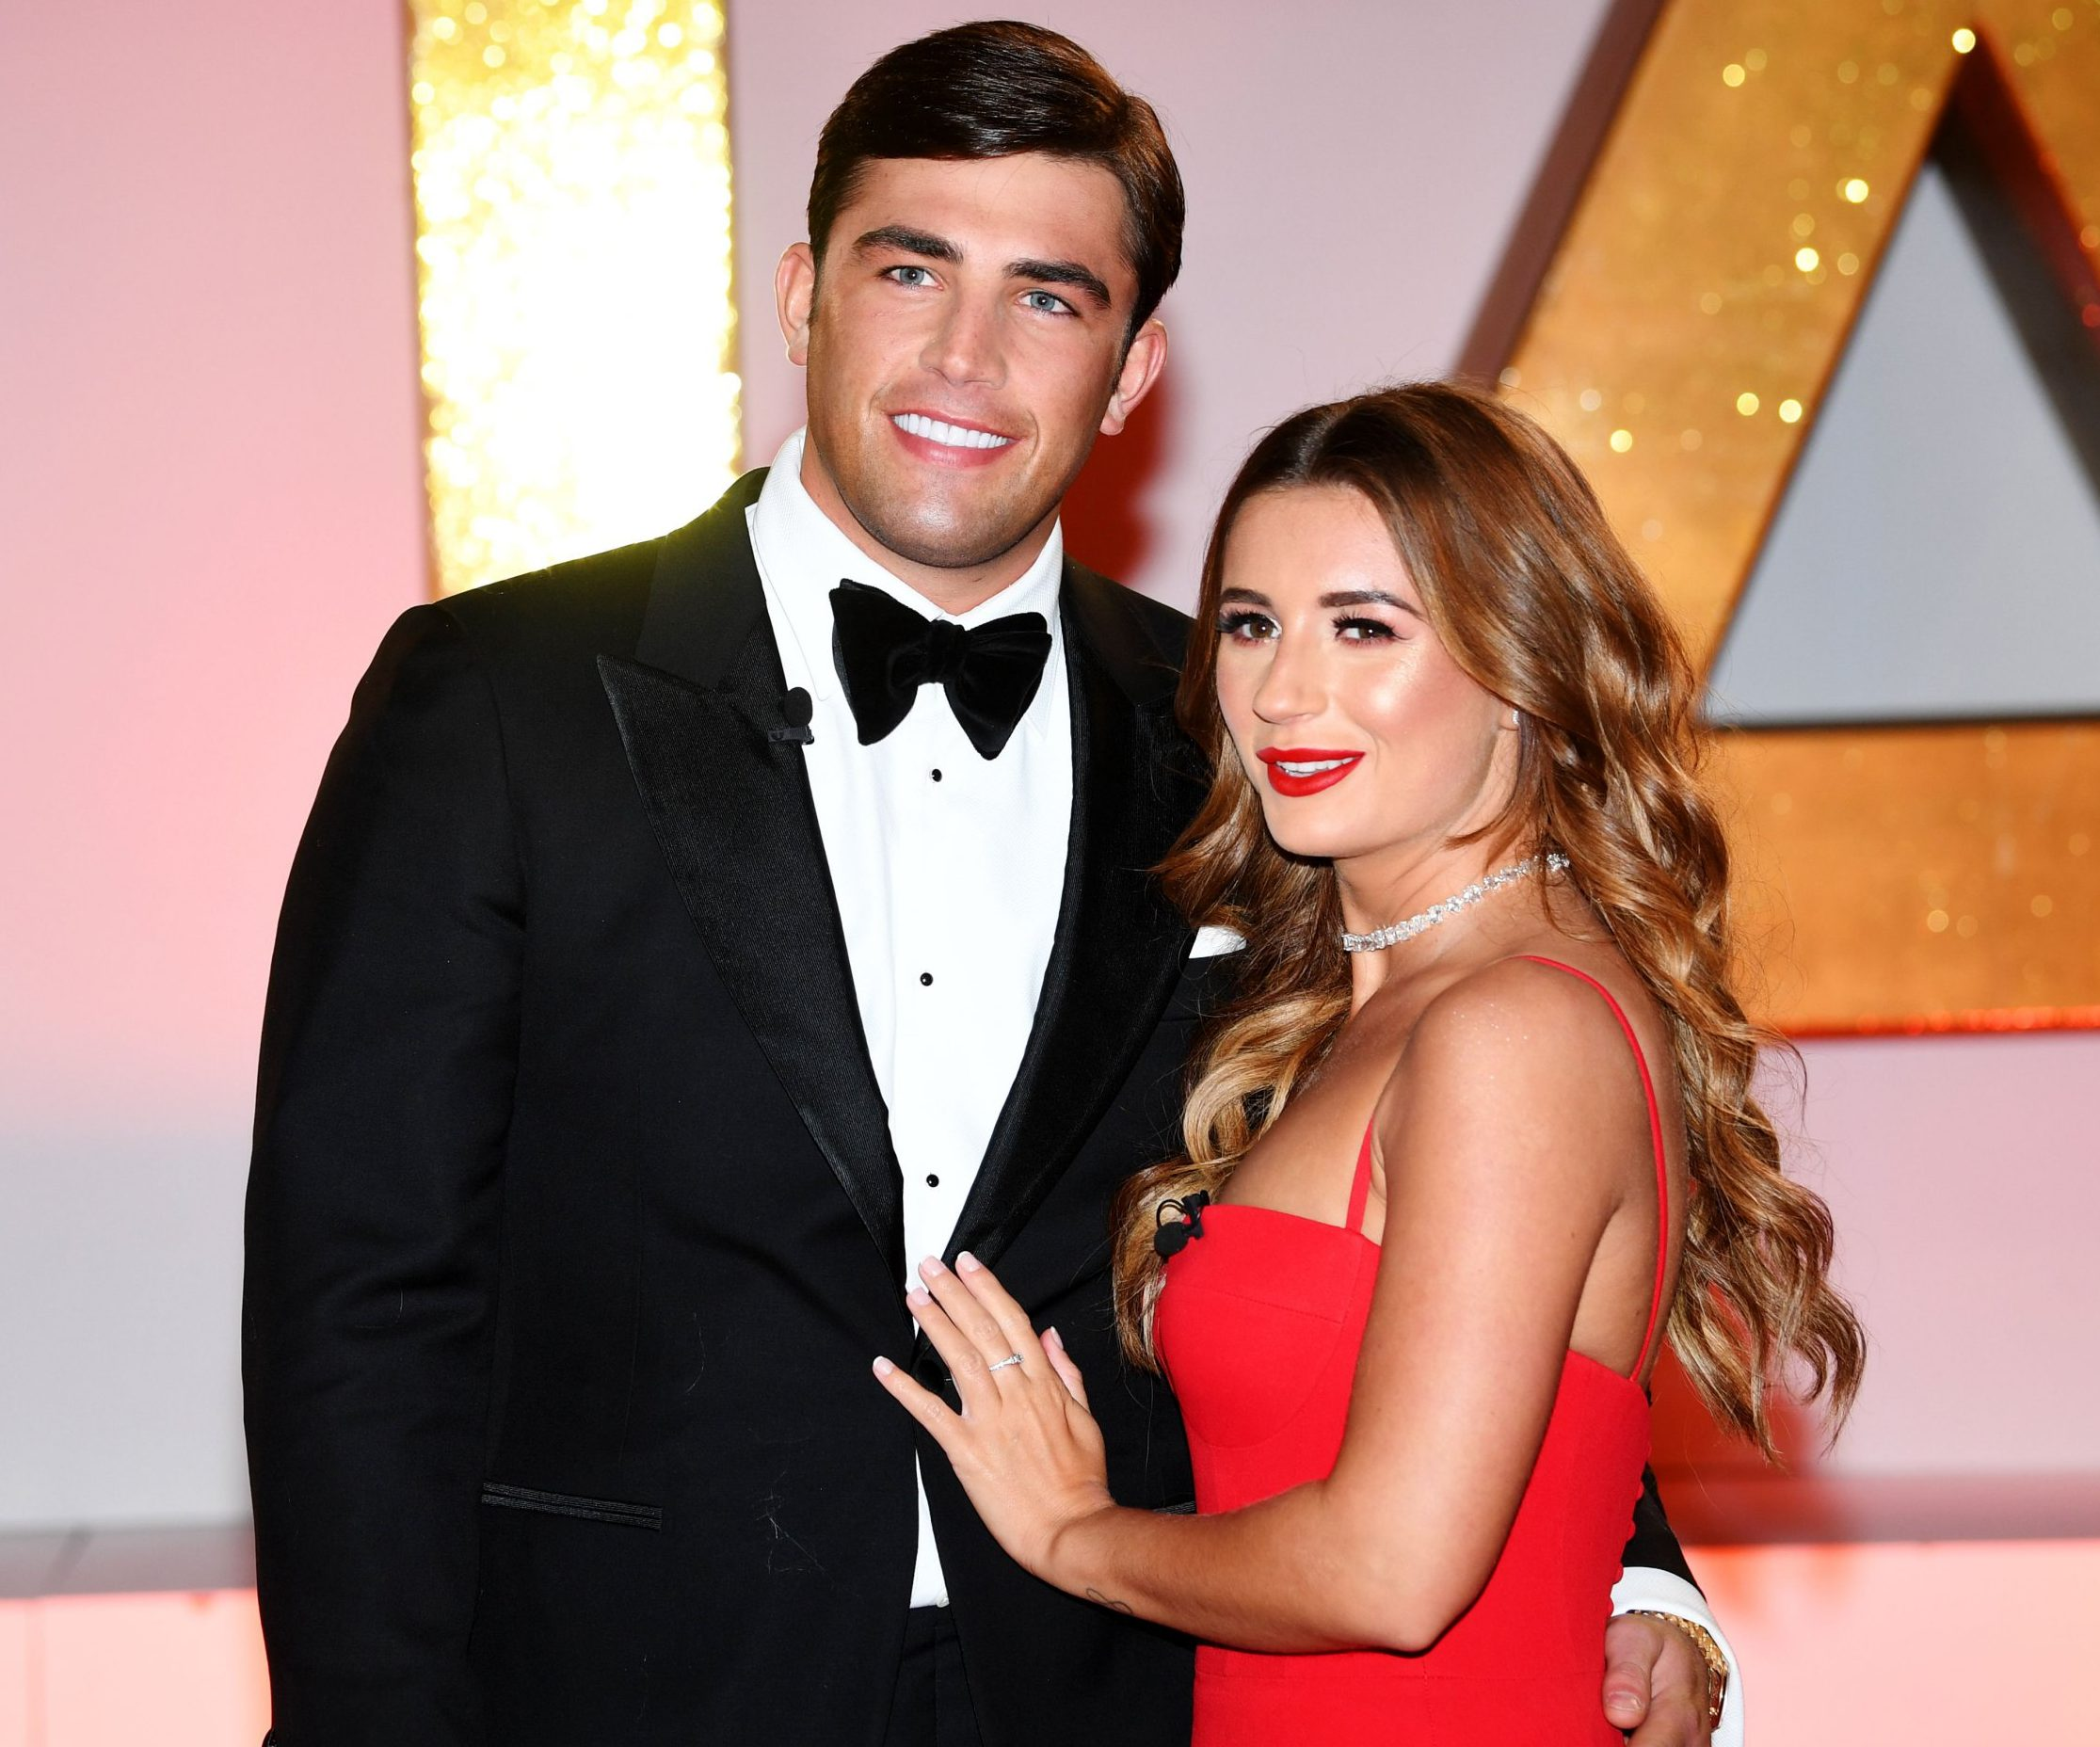 Jack Fincham confirms split with Dani Dyer: 'We really tried to make it work'